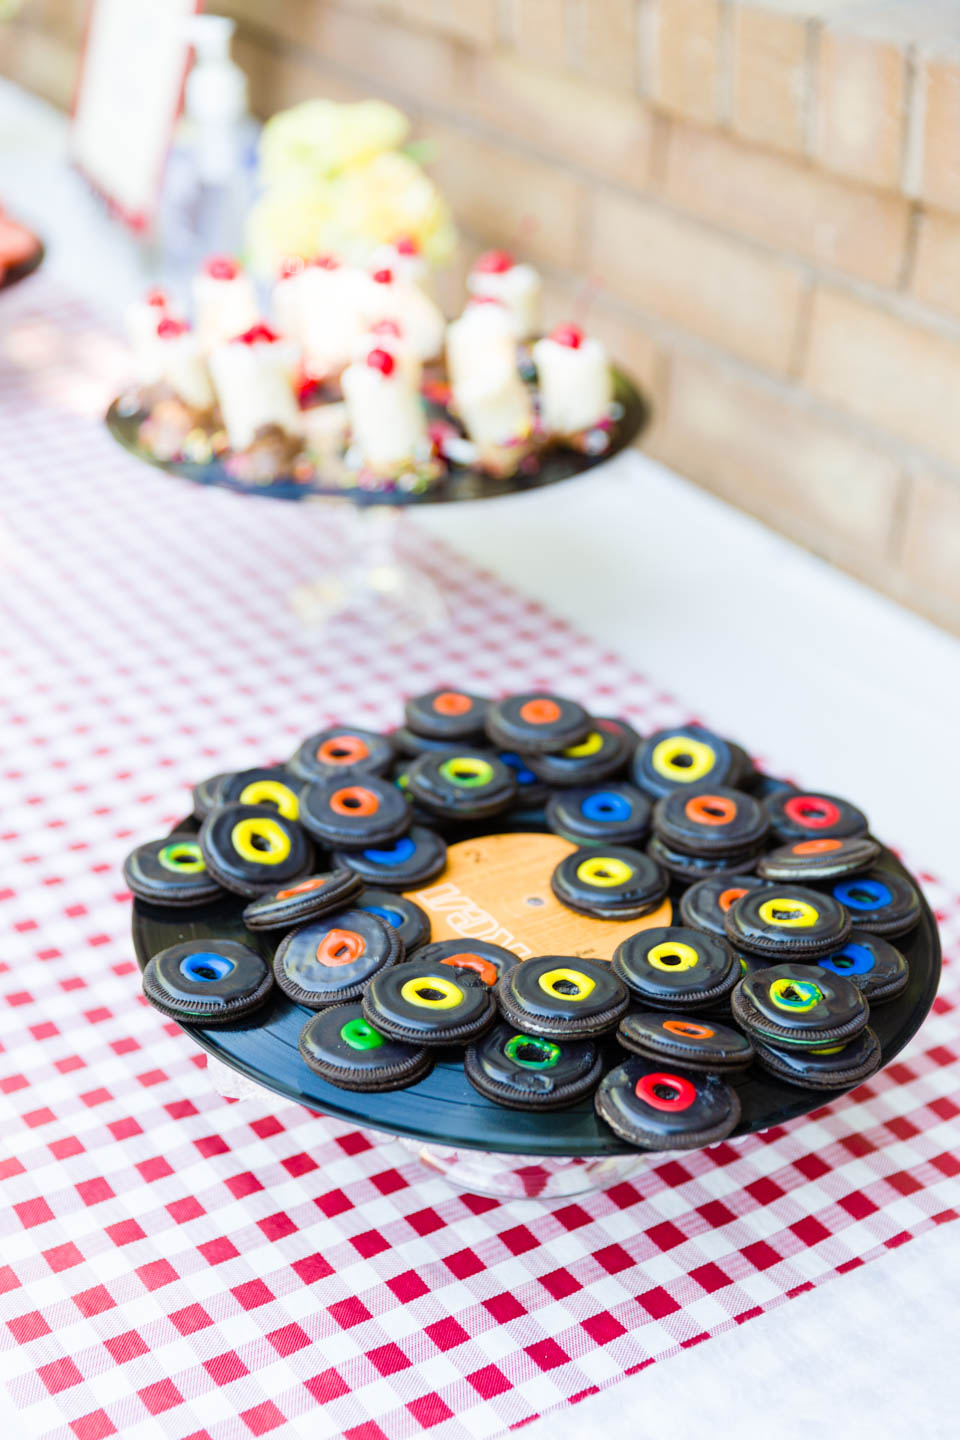 Oreos decorated as vinyl records